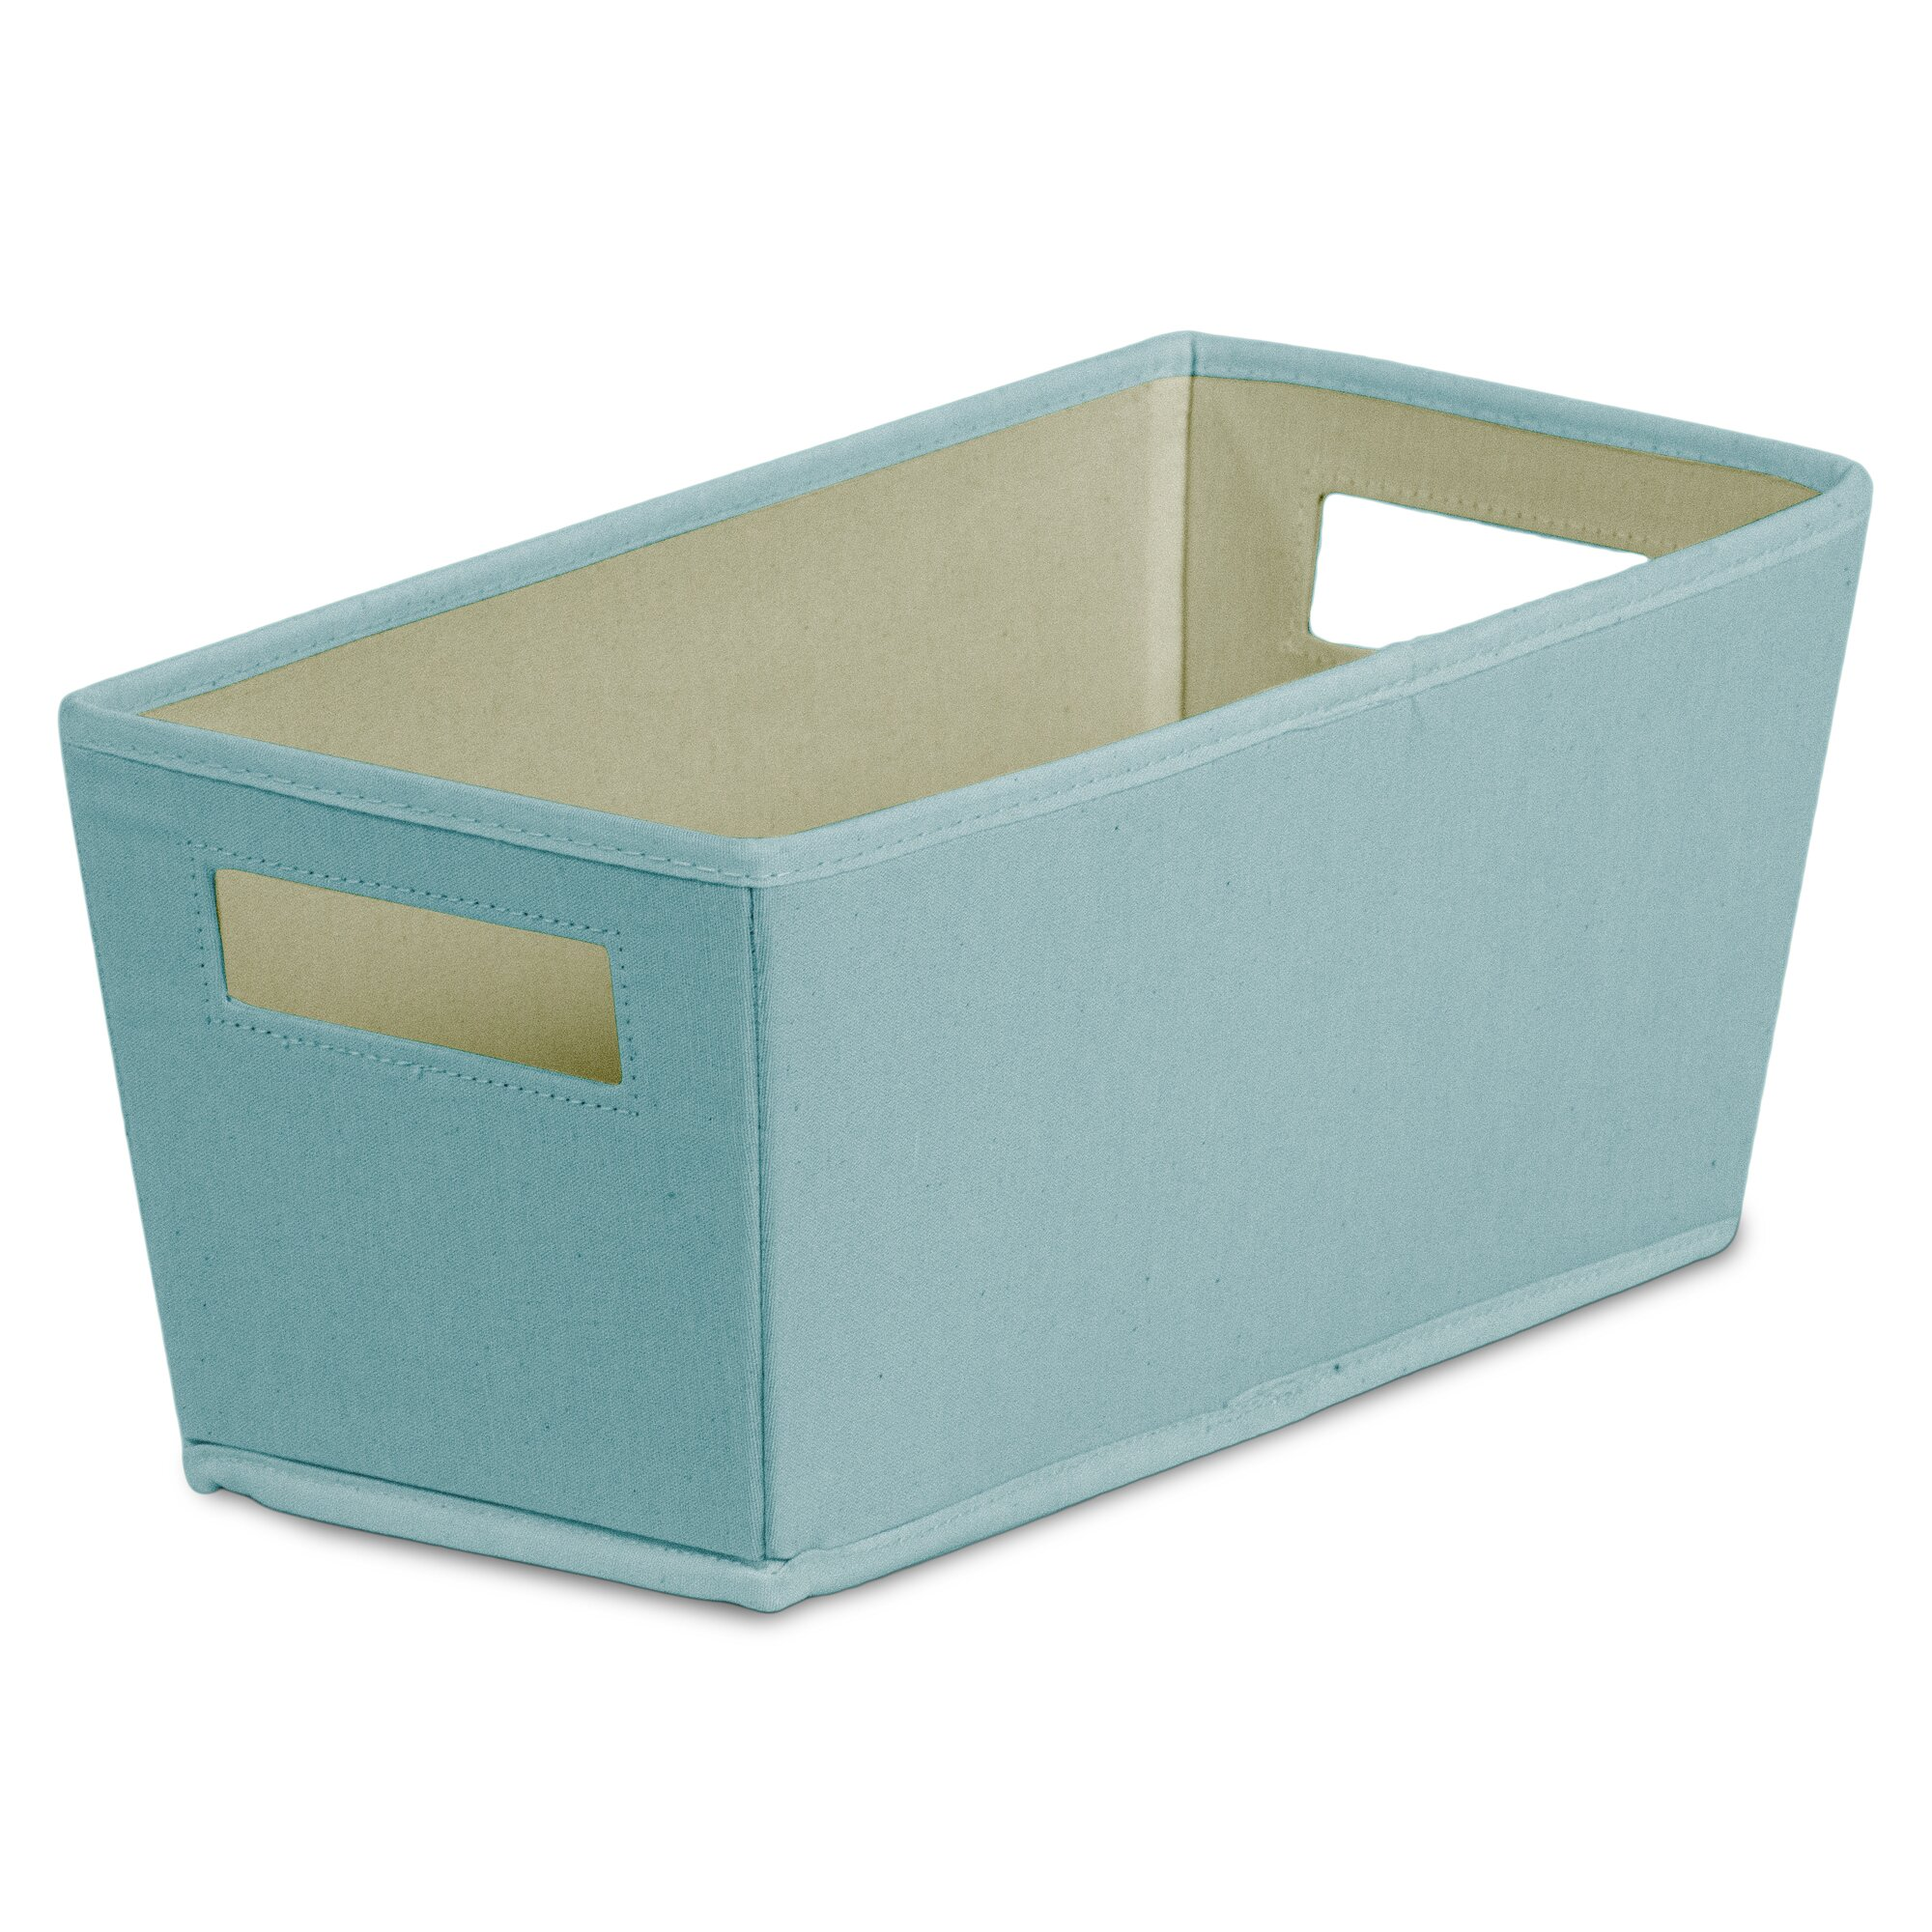 Bin Fabric Quarter Storage Bin Amp Reviews Wayfair Supply